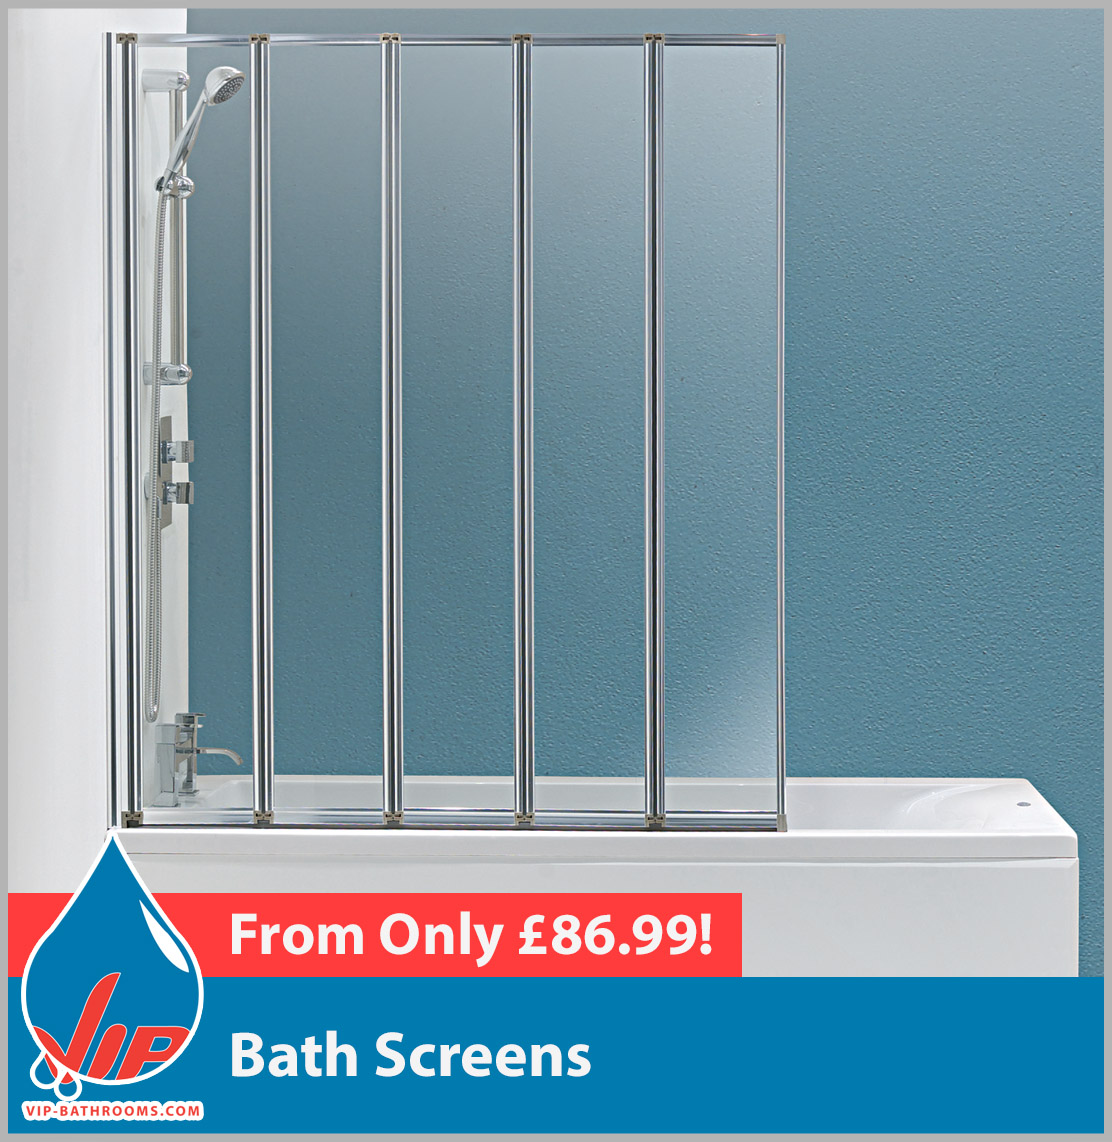 Shower Enclosures & Bath Screens | VIP-Bathrooms.com